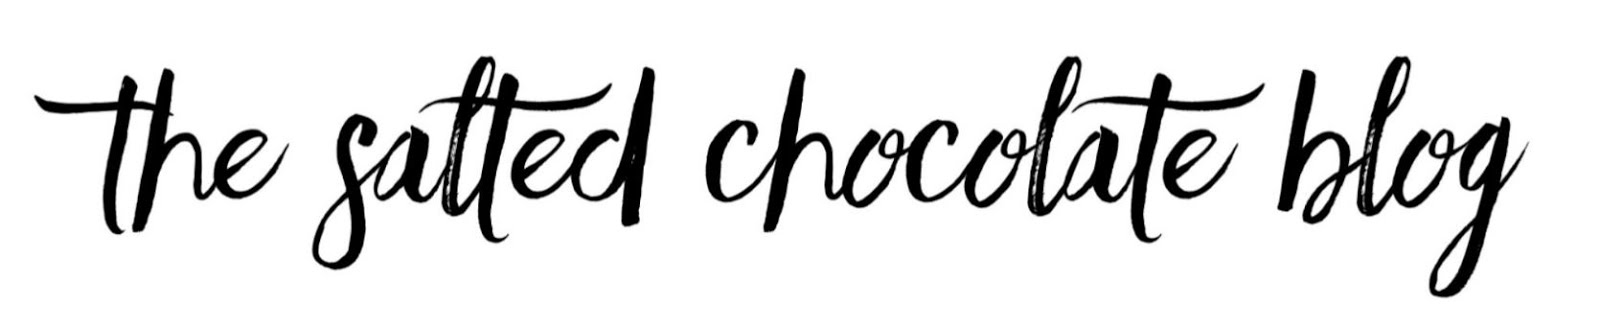 The salted chocolate blog